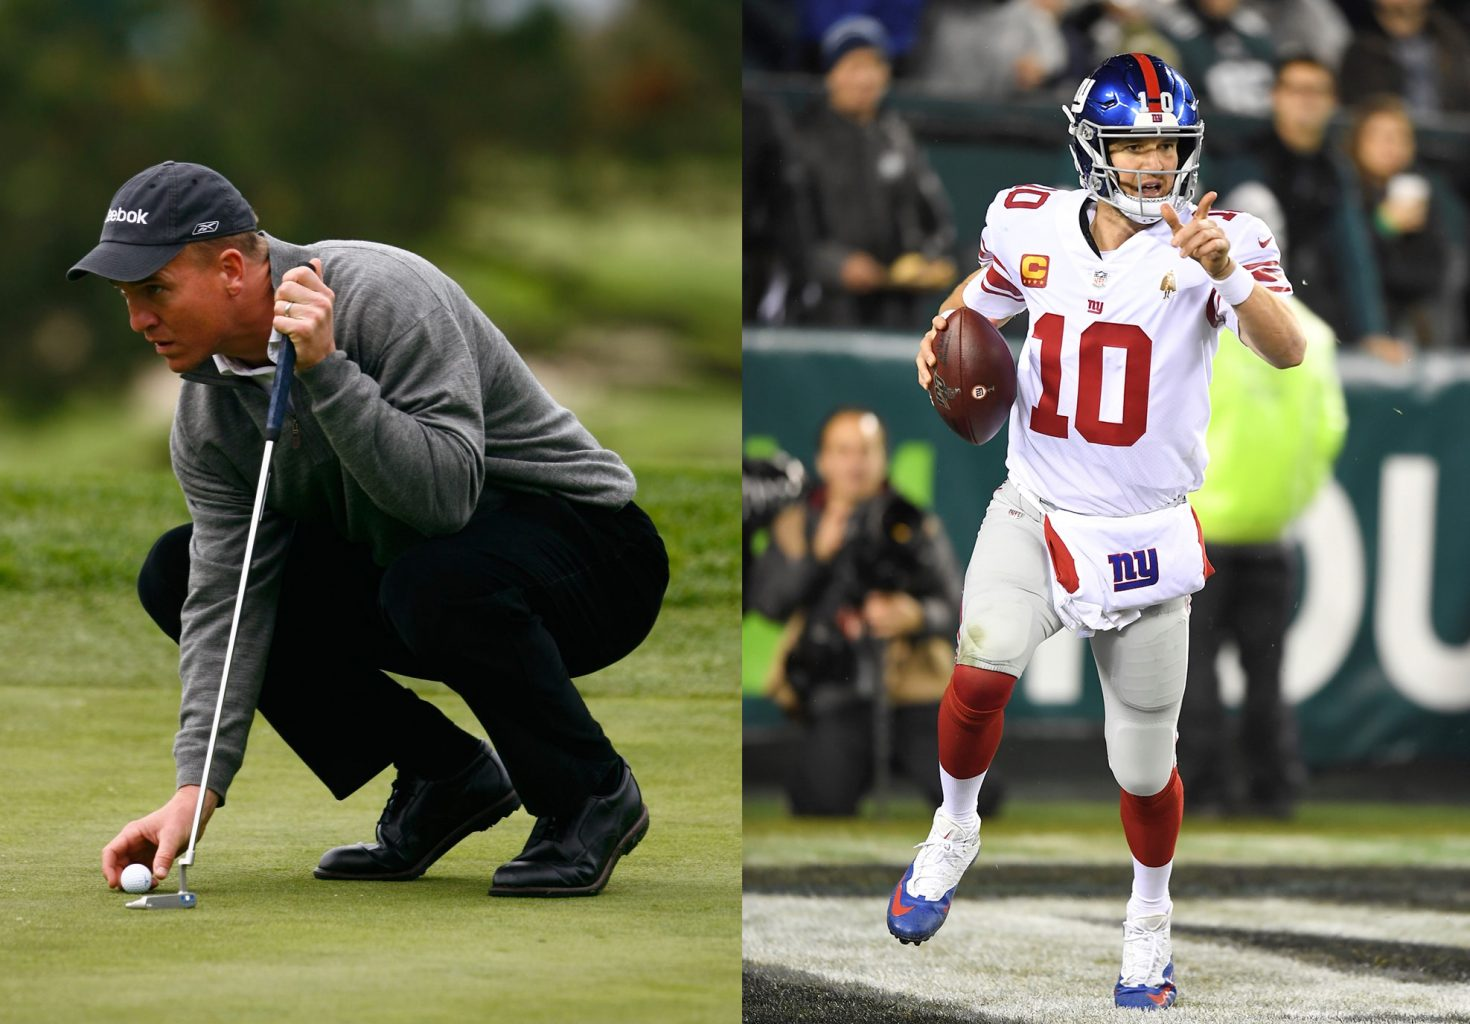 Peyton Manning setting up a golf ball and Eli Manning running holding a football